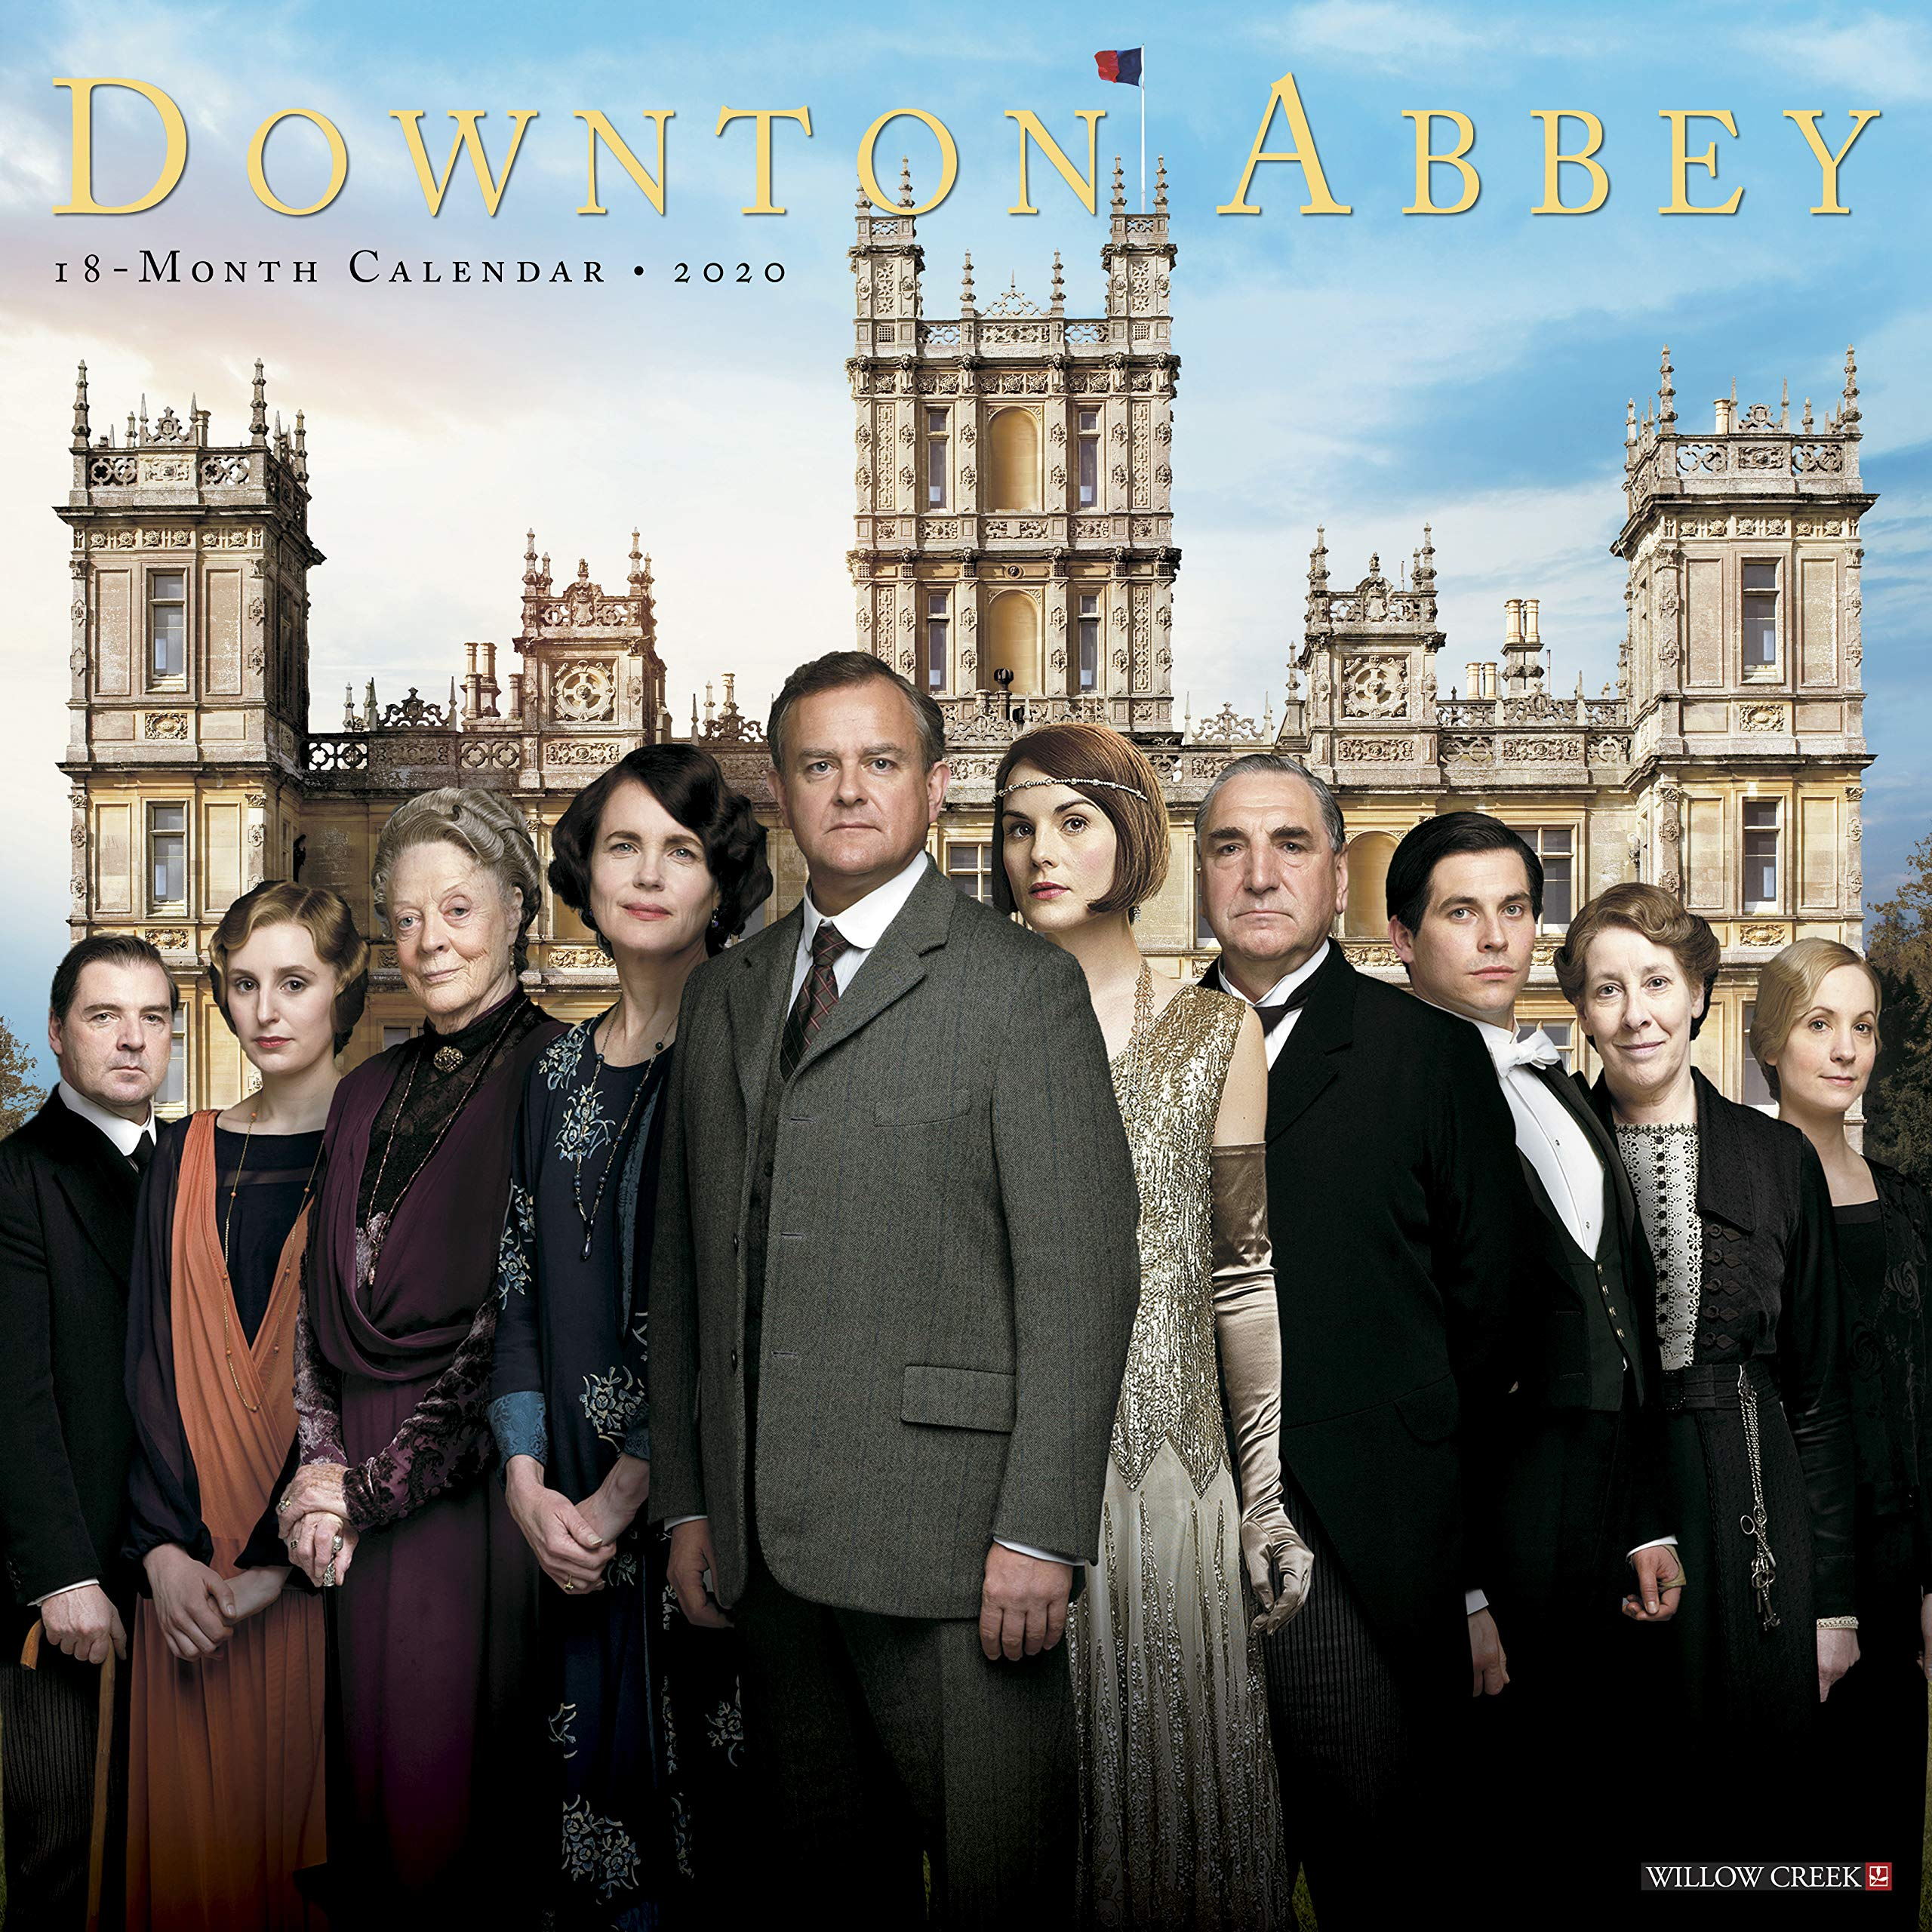 Downton Abbey 2020 Calendar